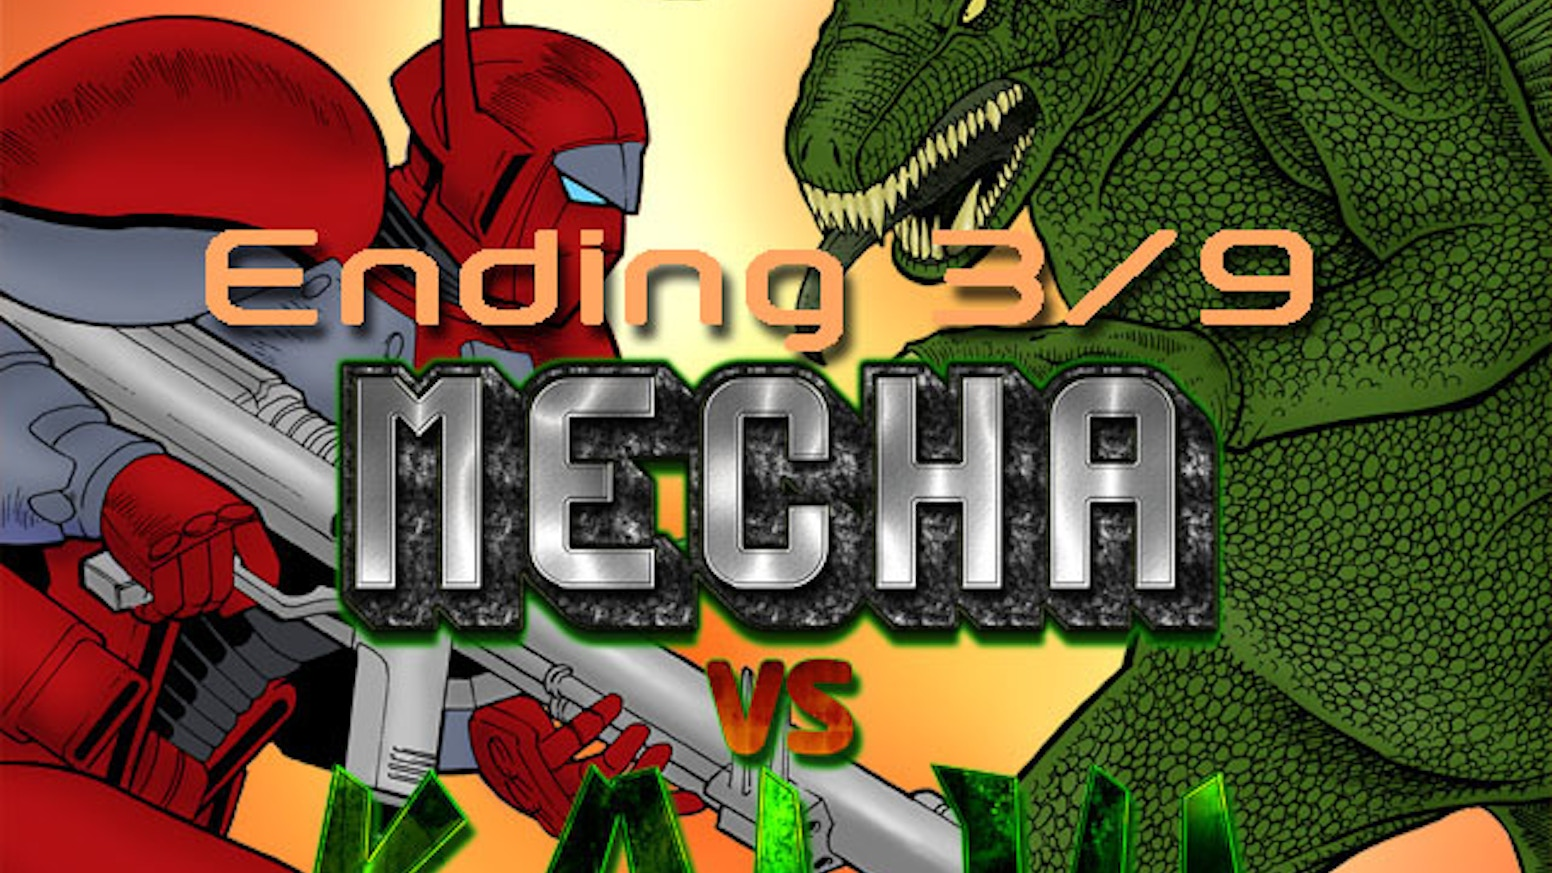 Mecha vs Kaiju is role playing game inspired by Japanese anime robots and giant monsters. Powered by Fate Core